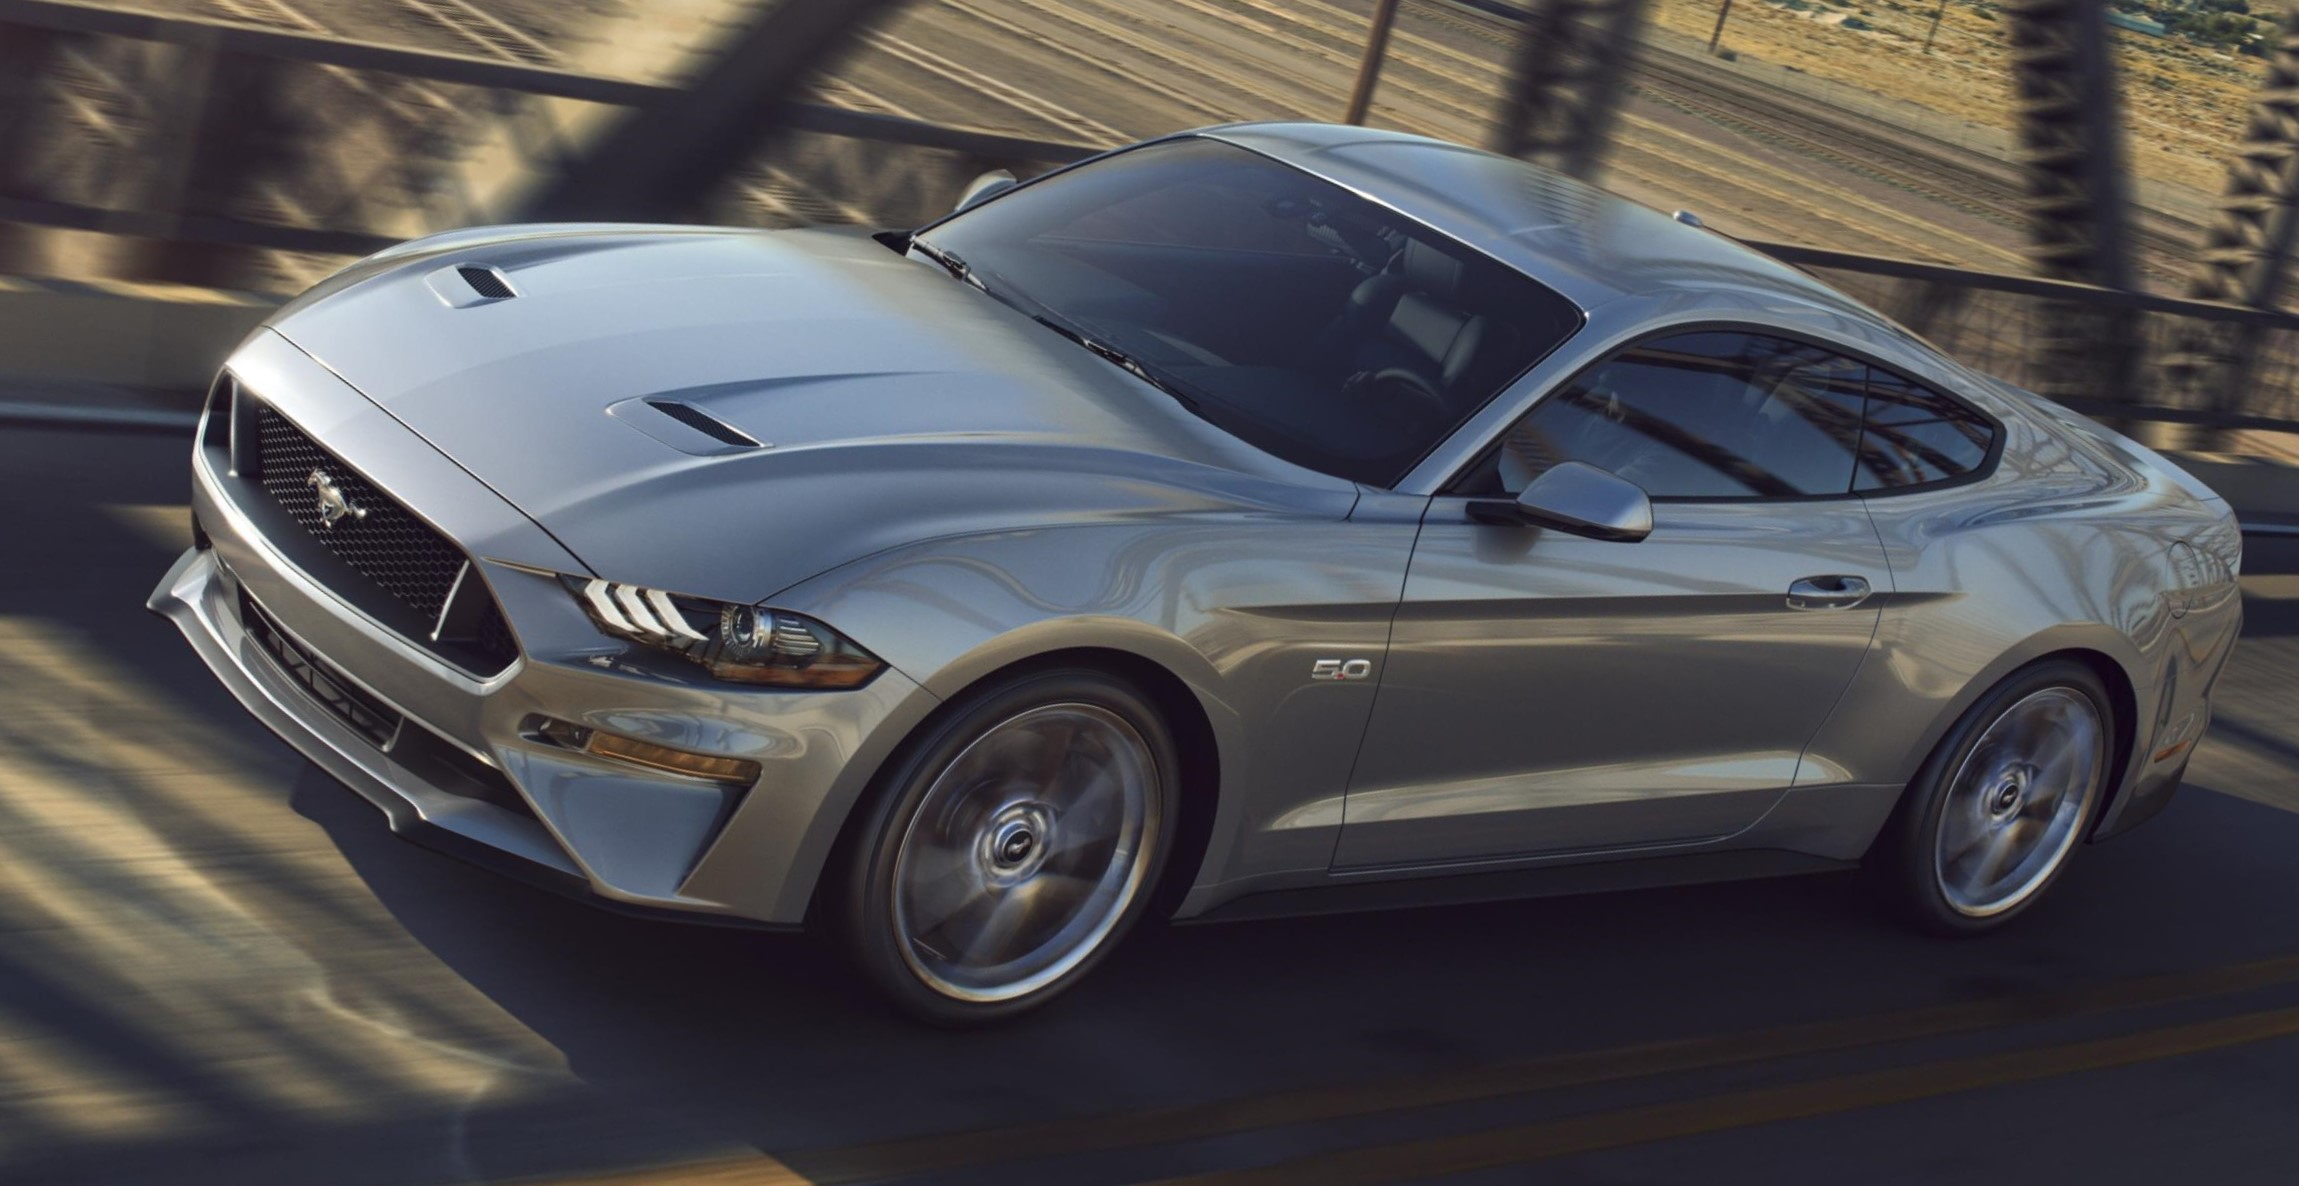 New Ford Mustang V8 Gt With Performace Pack In Ingot Silver